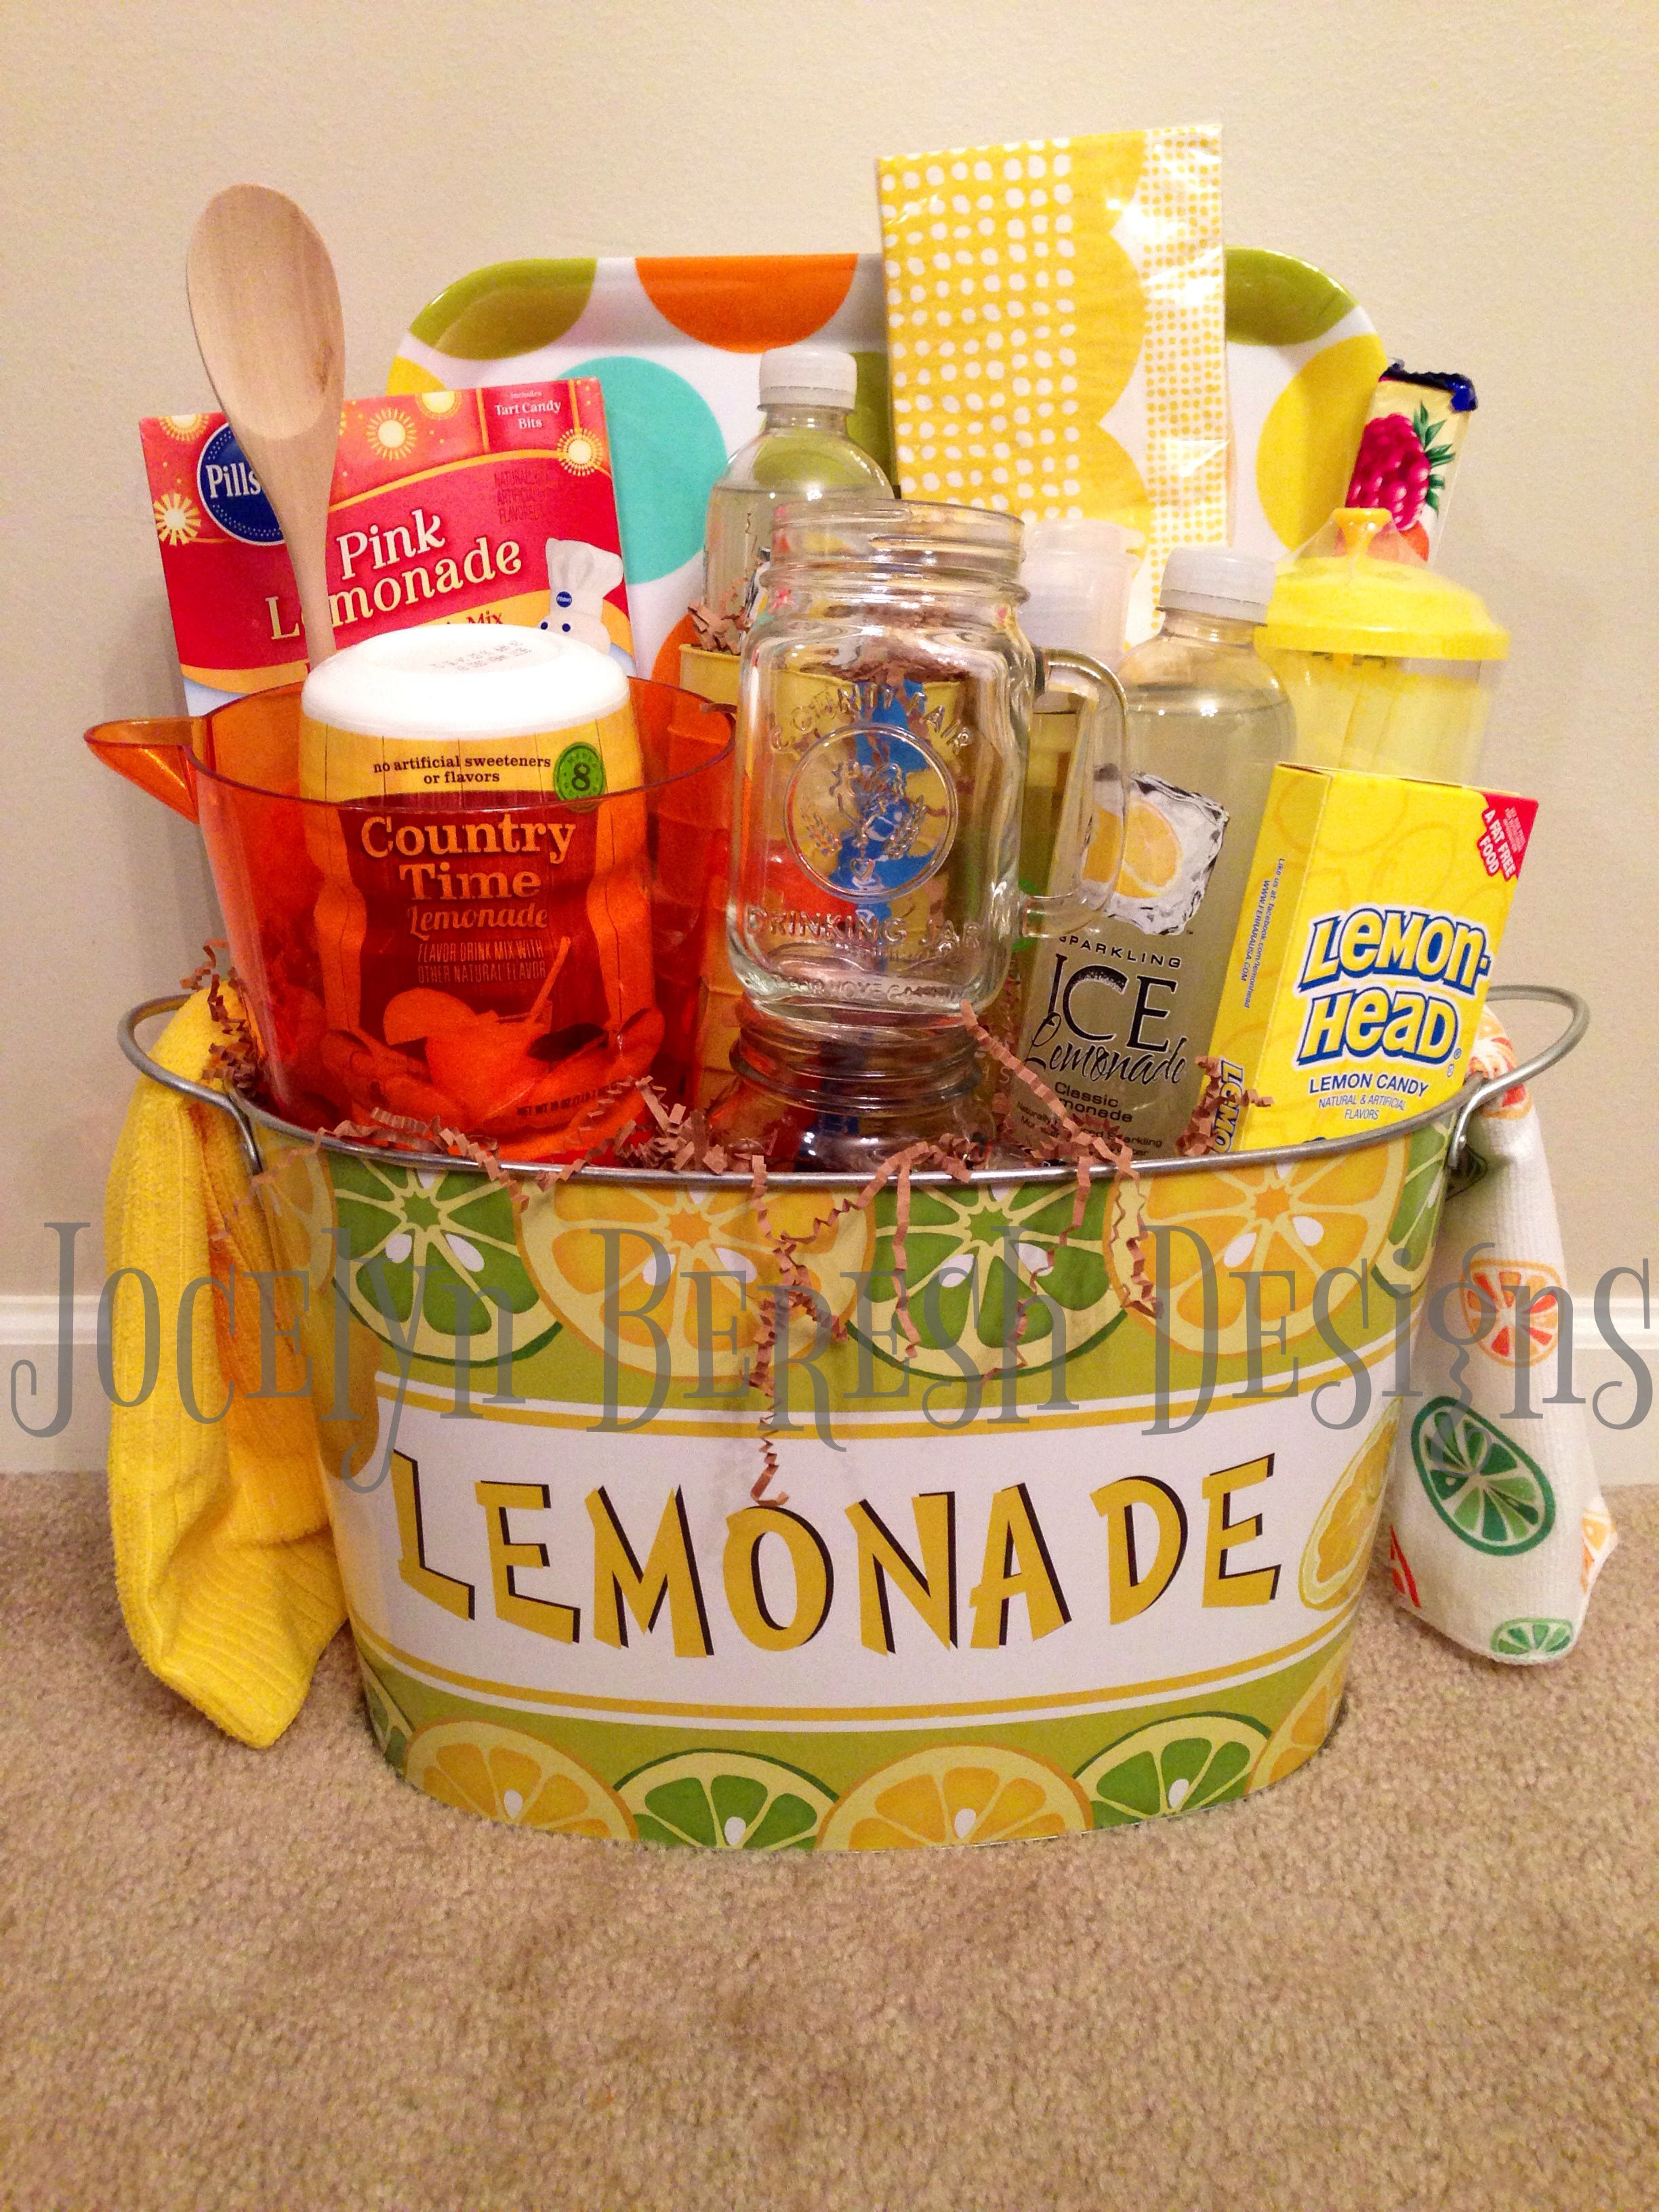 Lemonade gift basket by jocelynbereshdesigns like us on fb for lemonade gift basket by jocelynbereshdesigns like us on fb for great great negle Choice Image